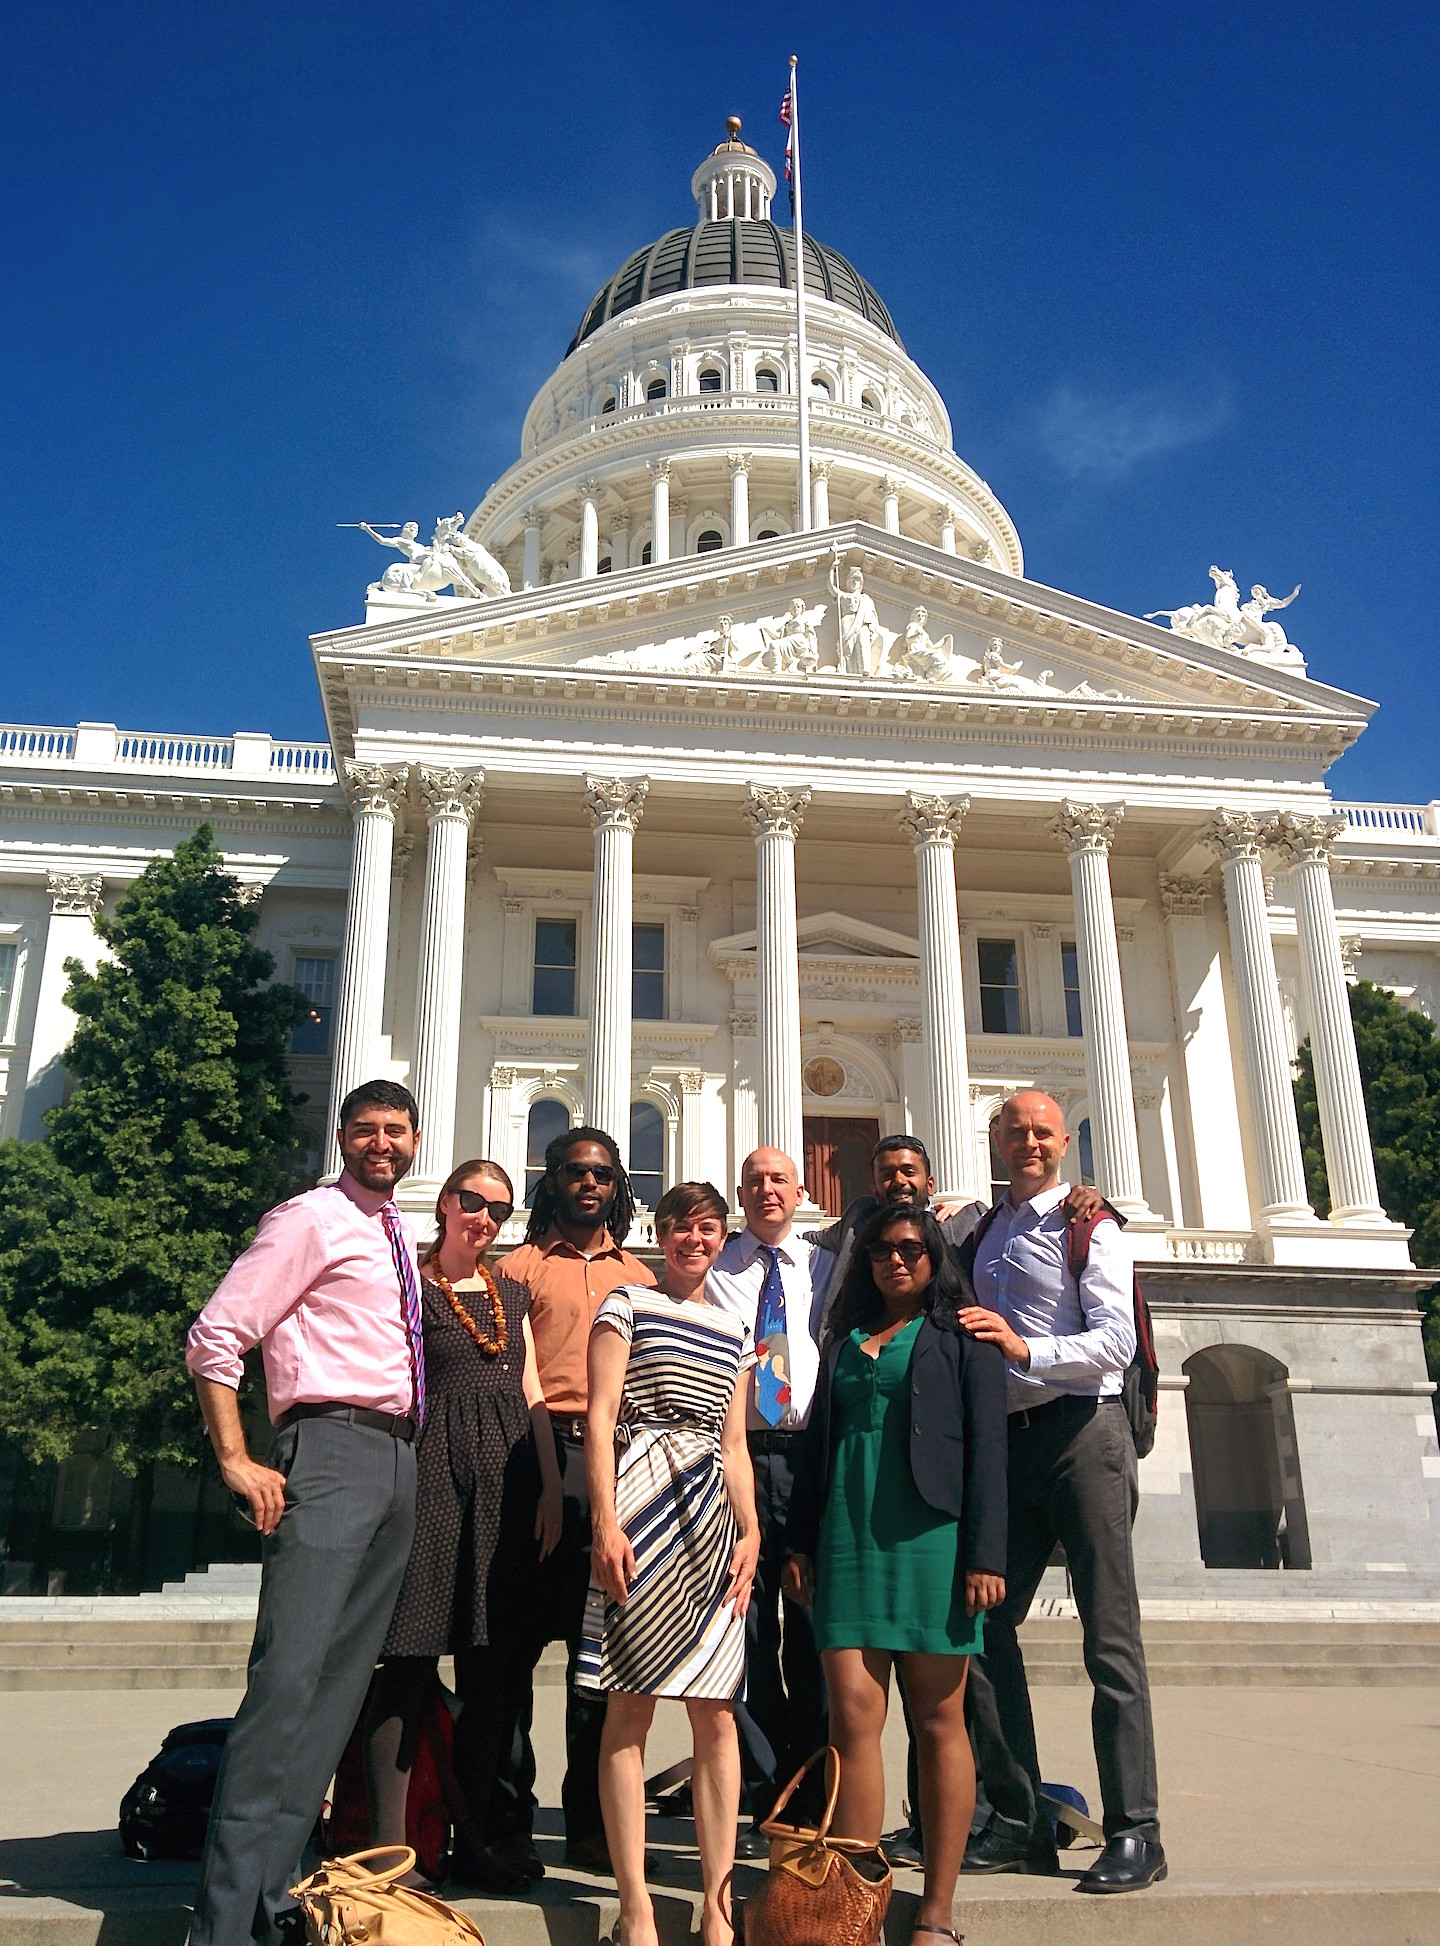 The California Center for Cooperative Development, the Arizmendi Association of Cooperatives, the United States Federation of Worker Cooperatives, the Sustainable Economies Law Center, the East Bay Community Law Center, the Green Collar Communities Clinic, and the Democracy at Work Institute!